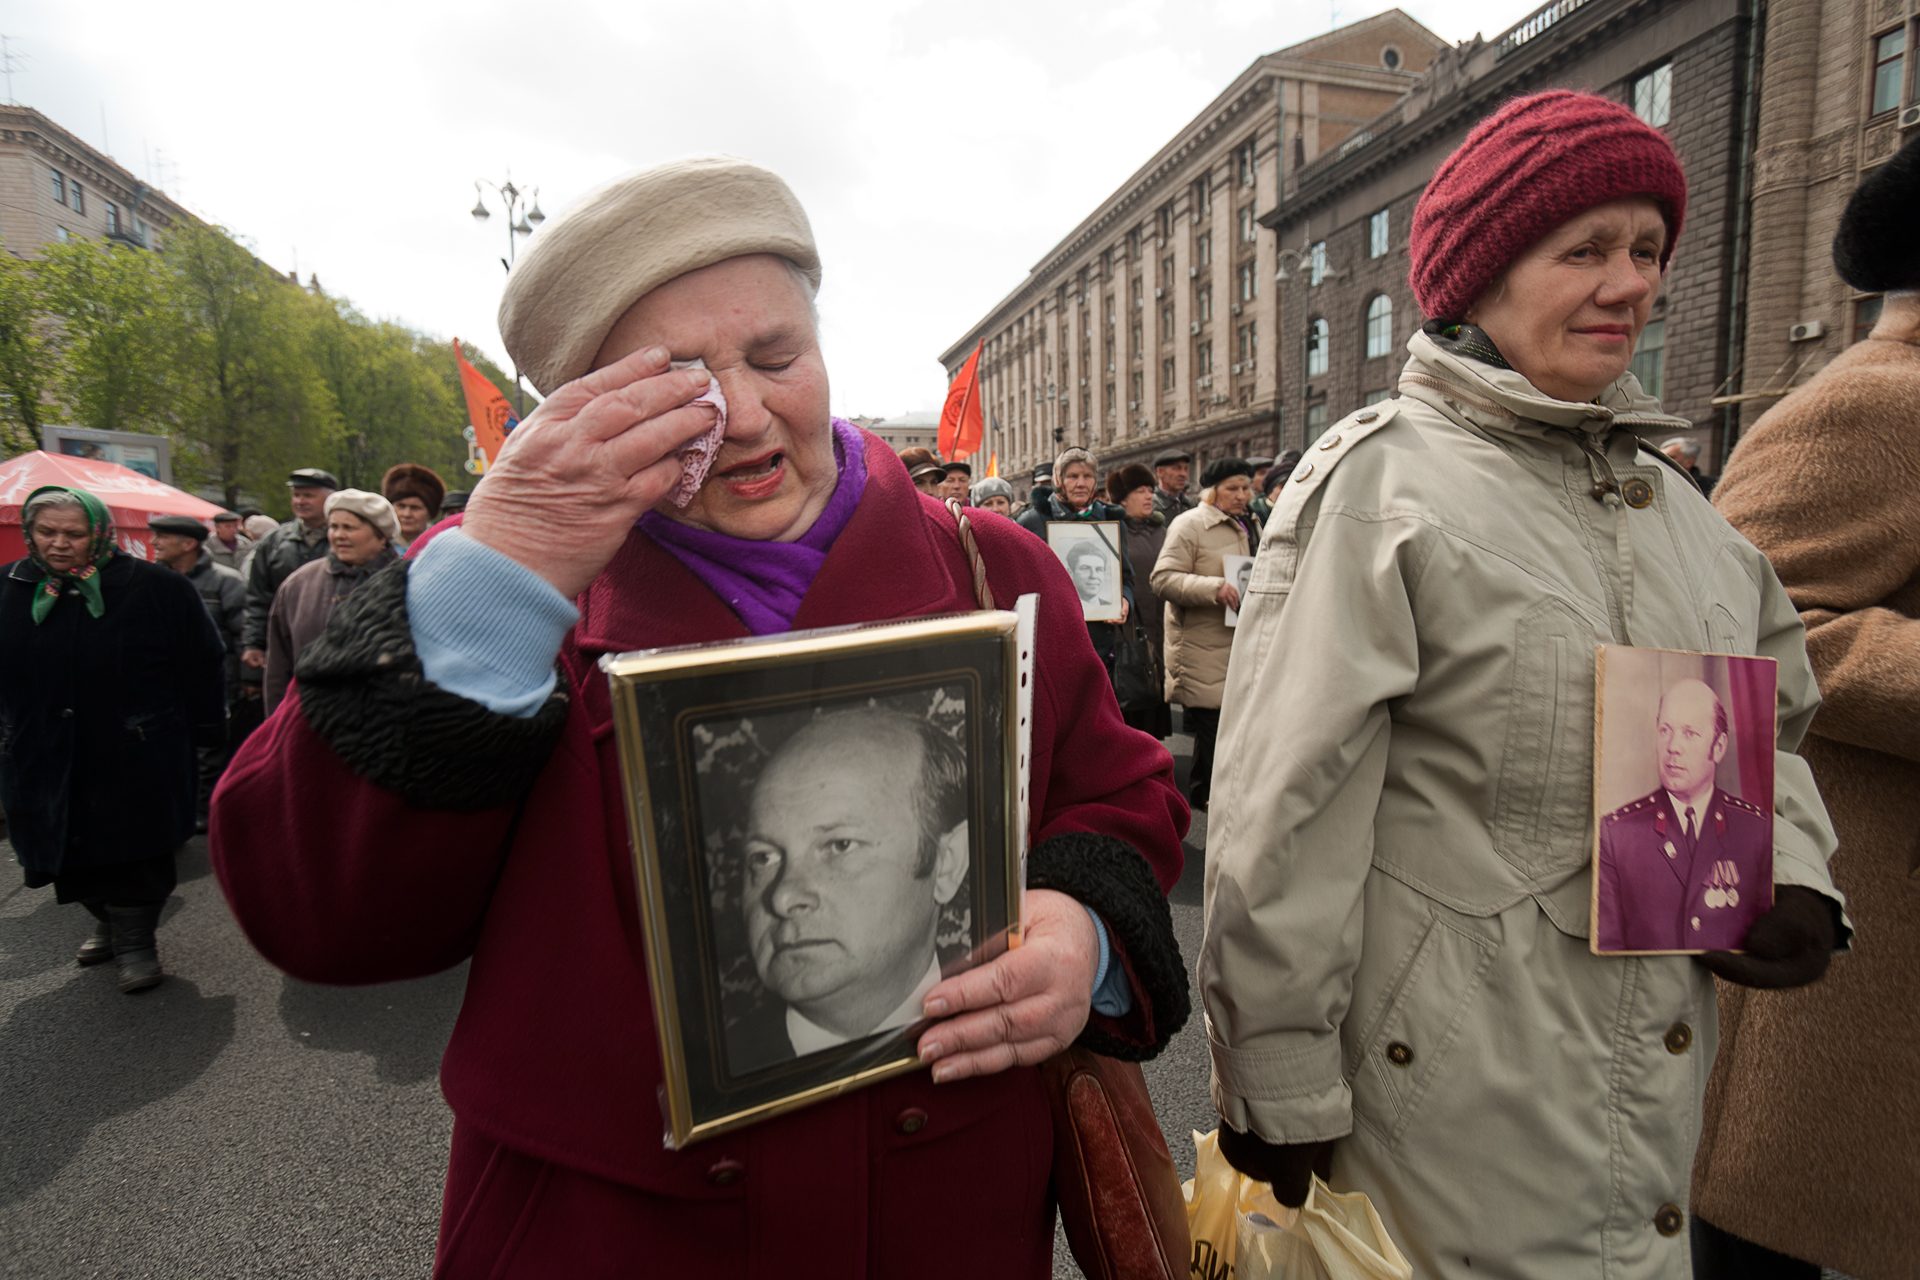 A group of women known as Chernobyl Widows carry photographs of their deceased loved ones during a 5,000 strong demonstration in Kiev on the anniversary of the Chernobyl accident.  Kiev, Ukraine